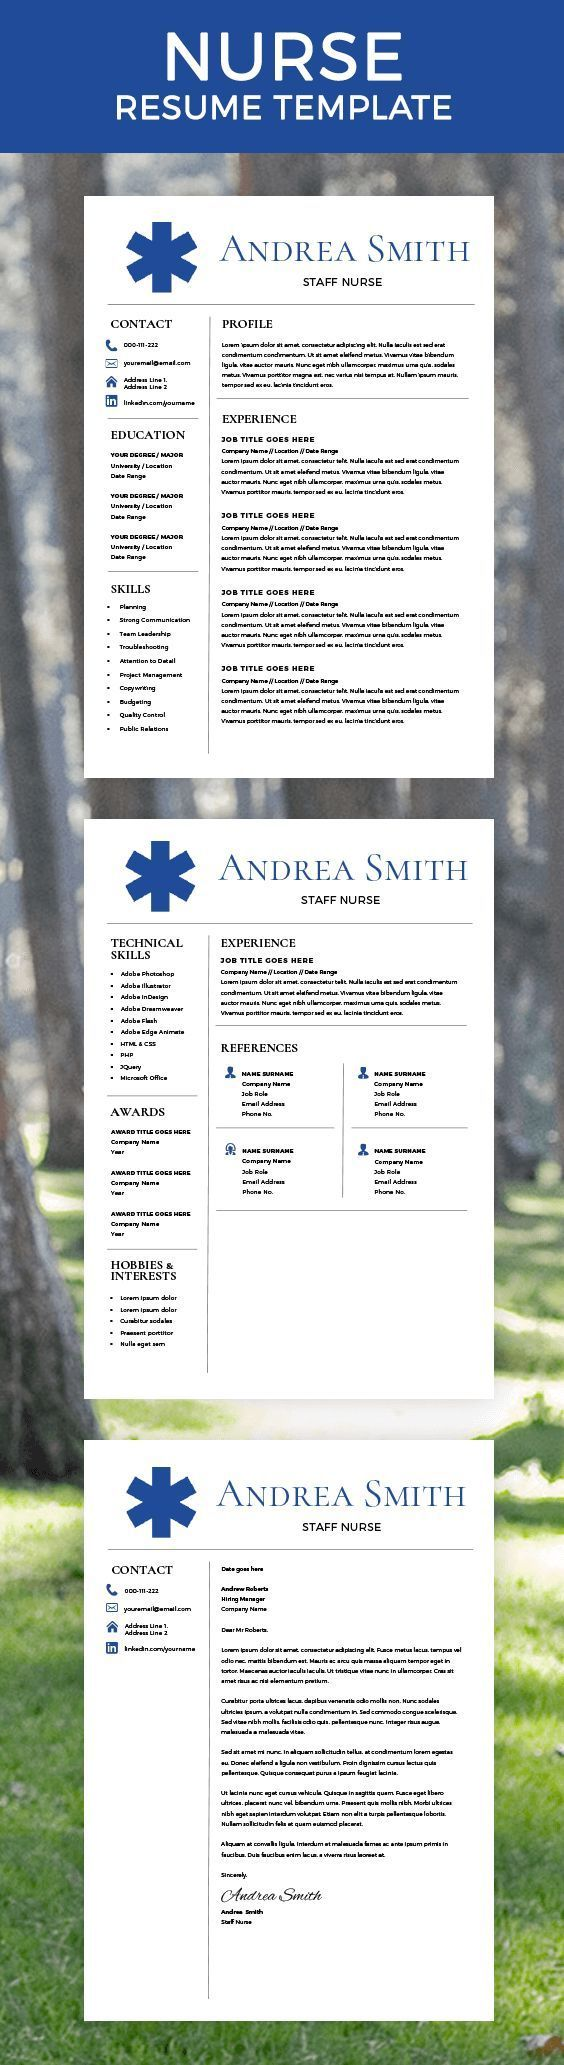 general laborer resume%0A Nurse Resume Template  Nurse Staff  Top Resume Templates  CV Template   Free Cover